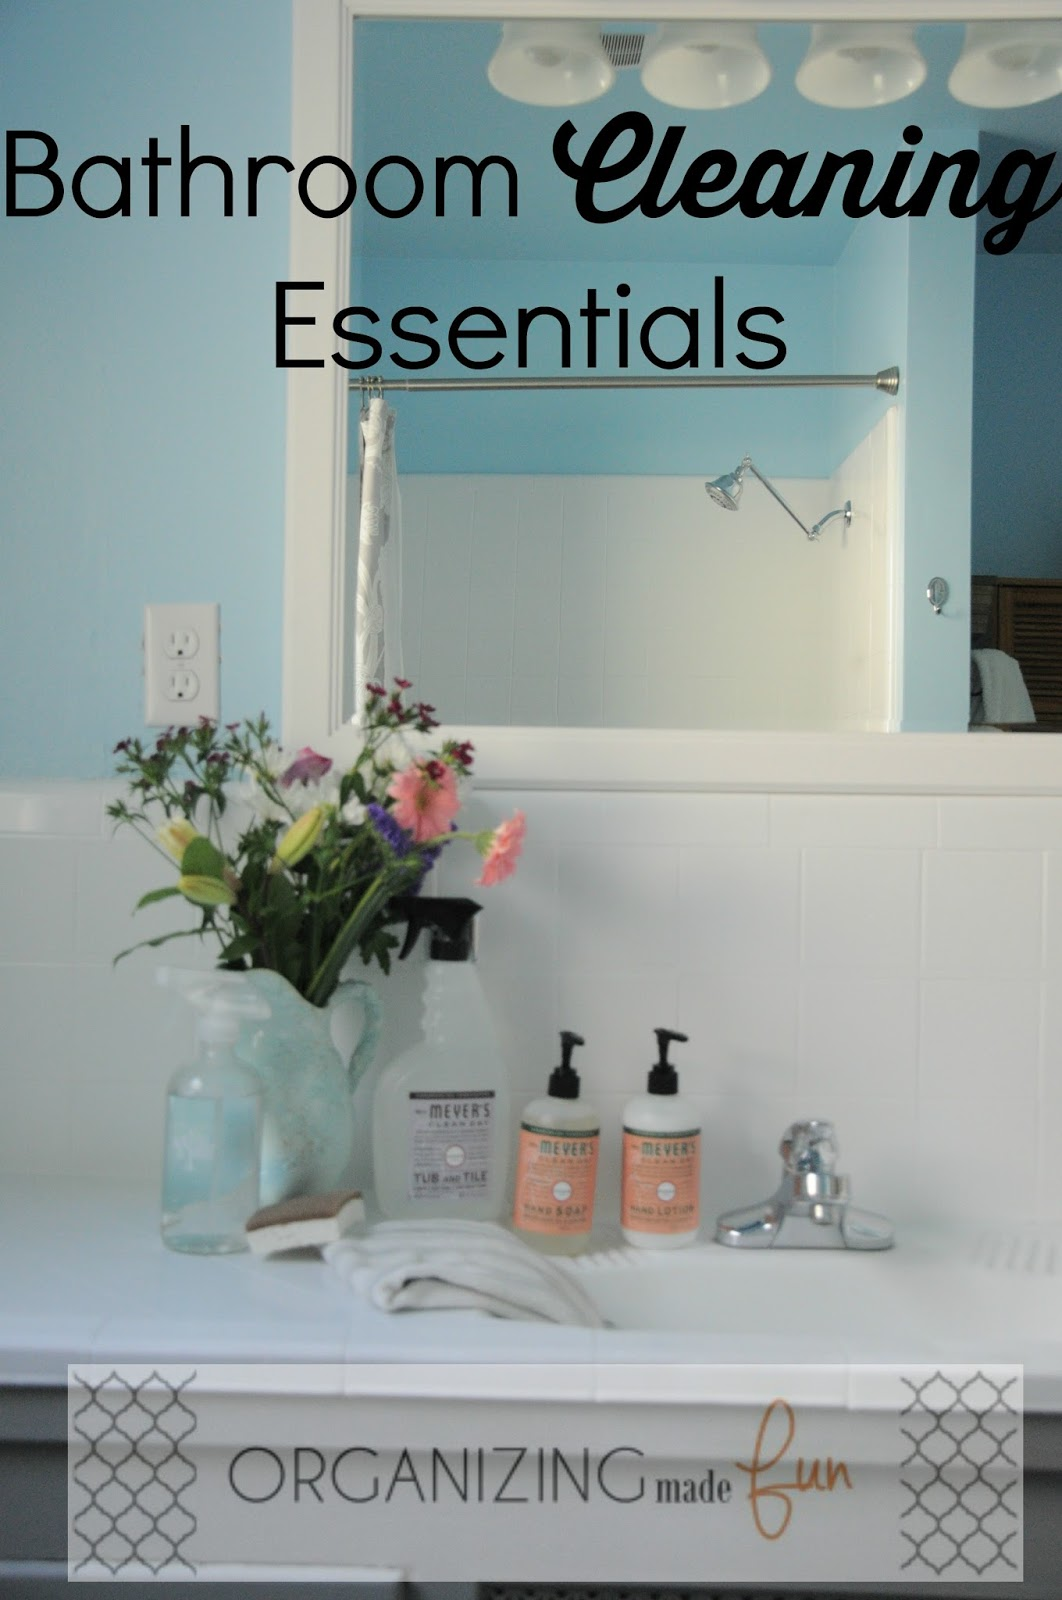 Bathroom cleaning essentials from grove collaborative for Bathroom essentials